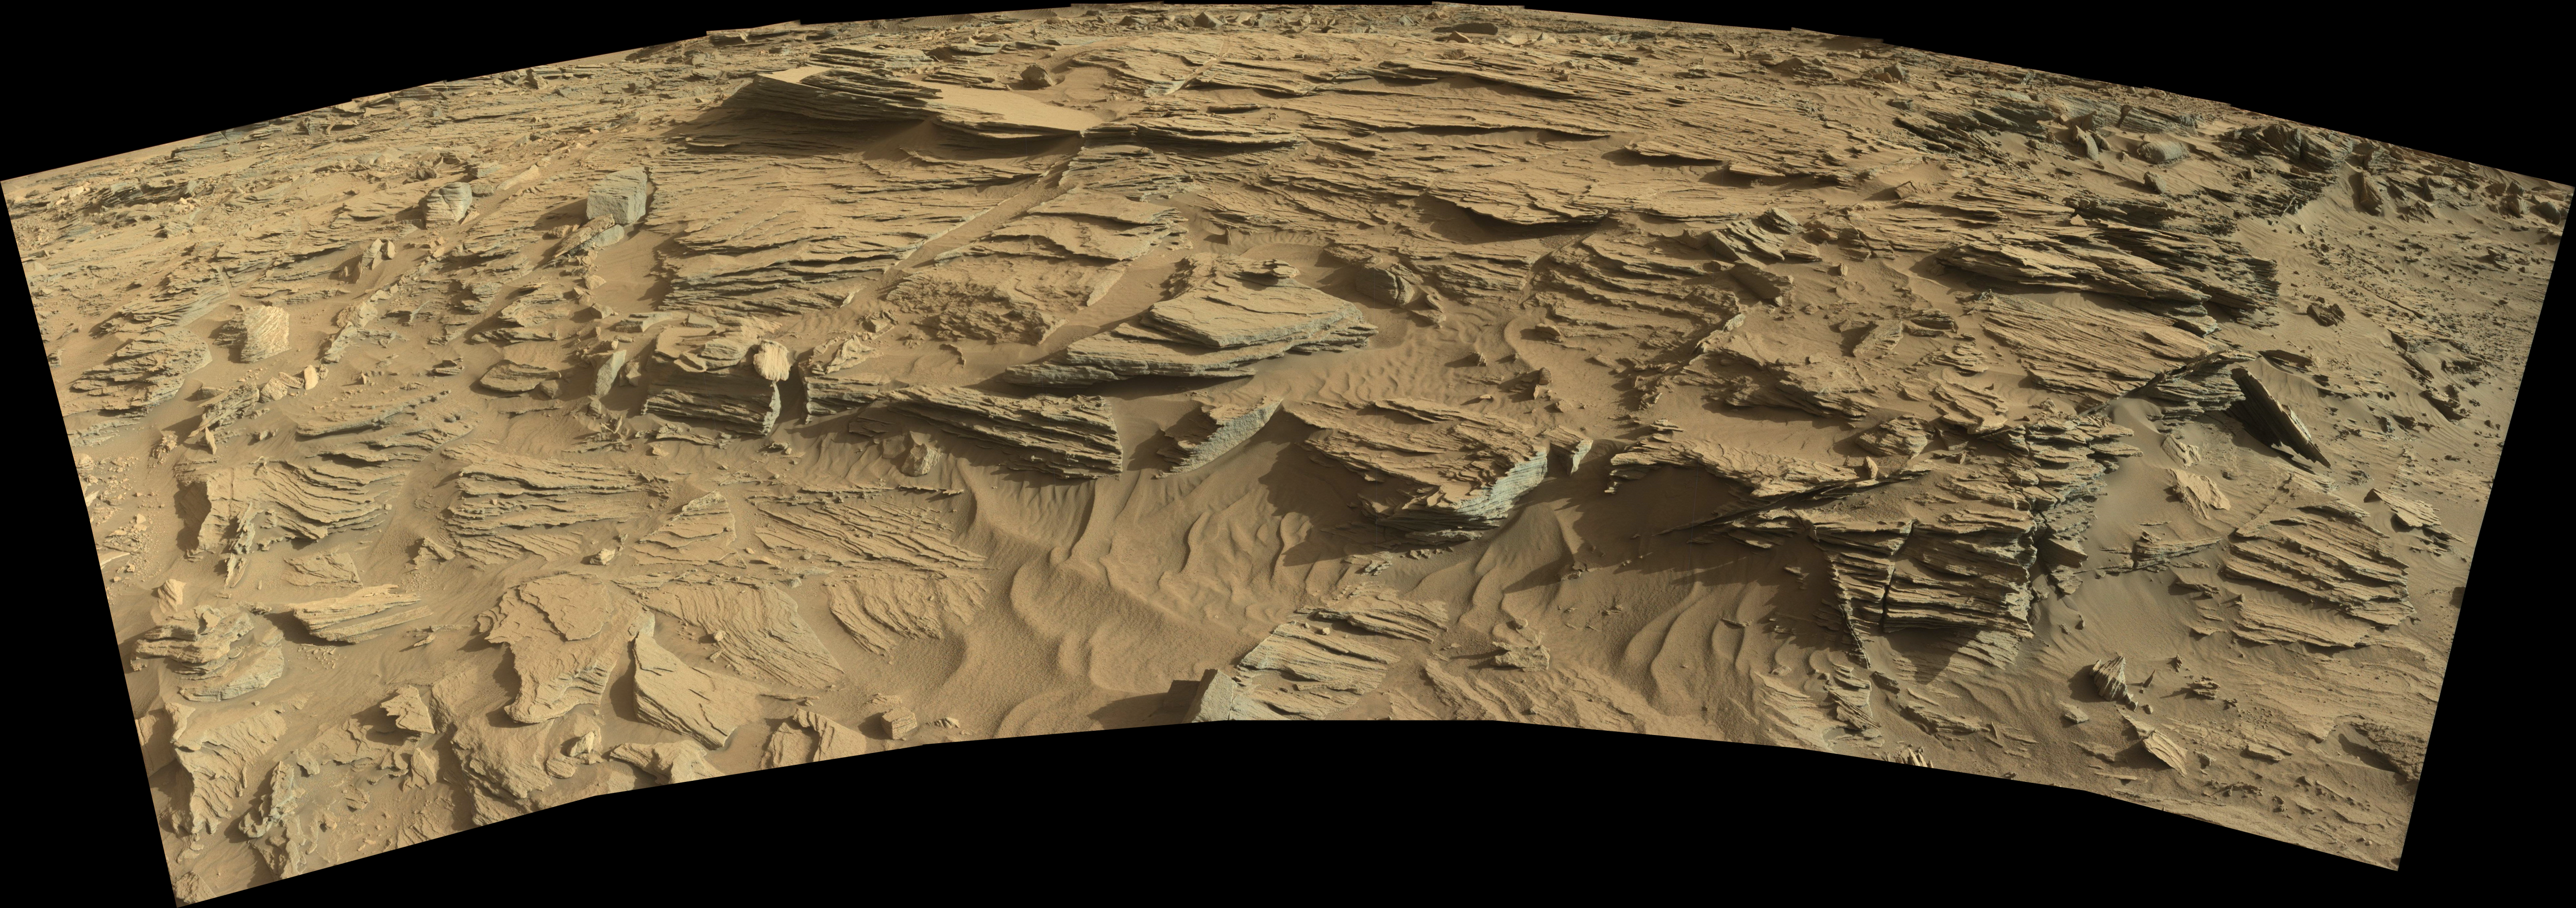 panoramic curiosity rover view 3 - sol 1301 - was life on mars